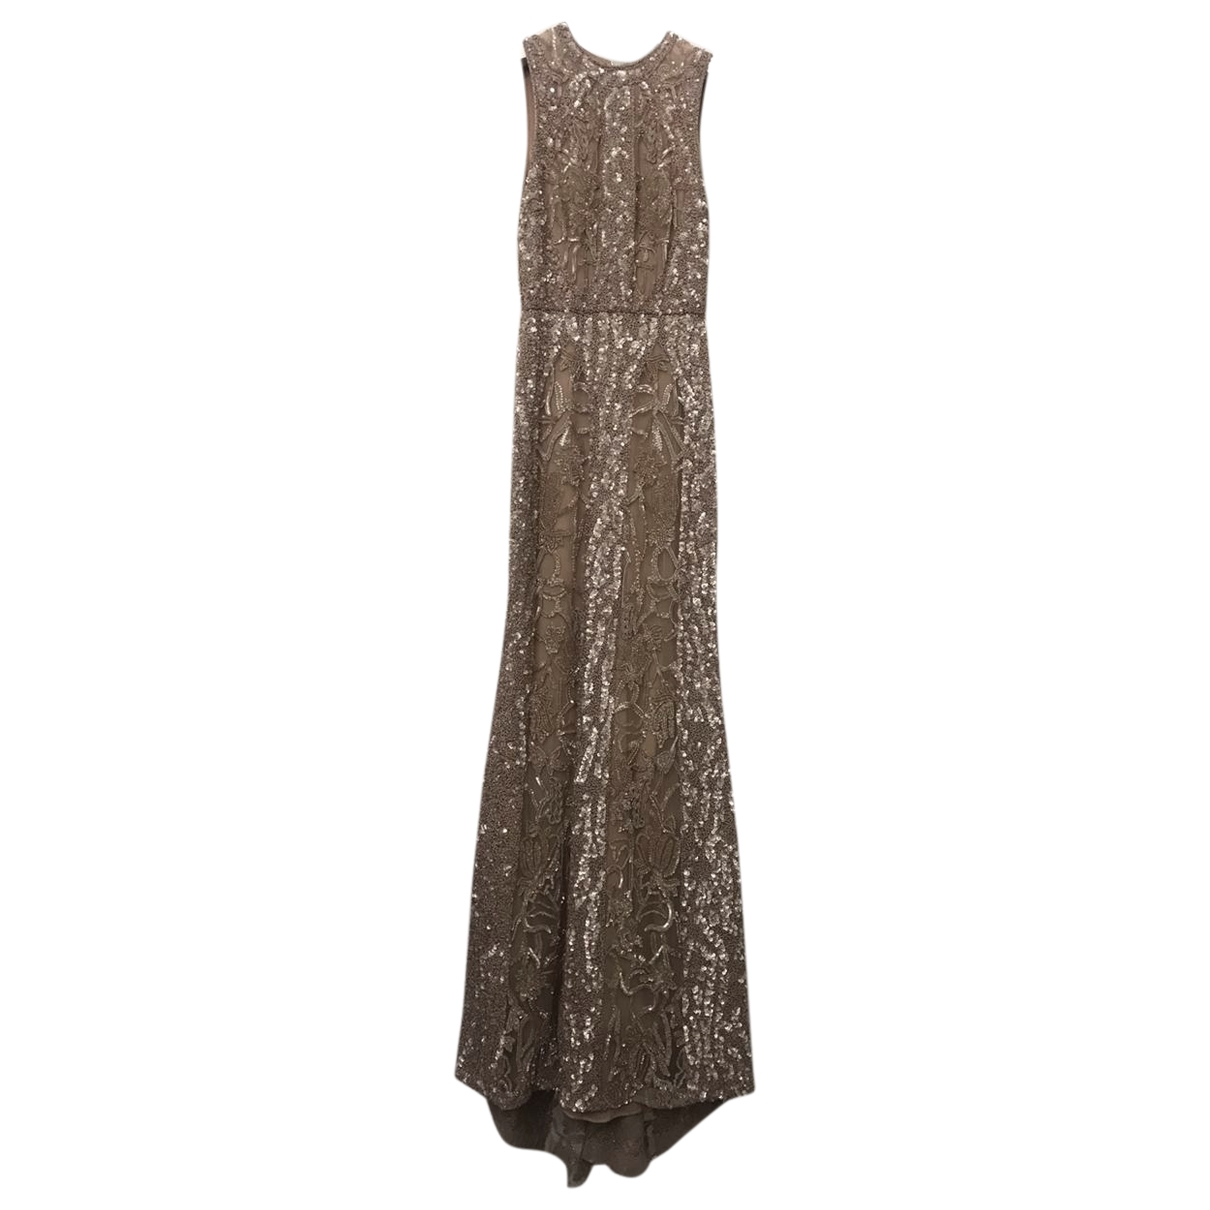 Elie Saab \N Beige dress for Women 36 FR